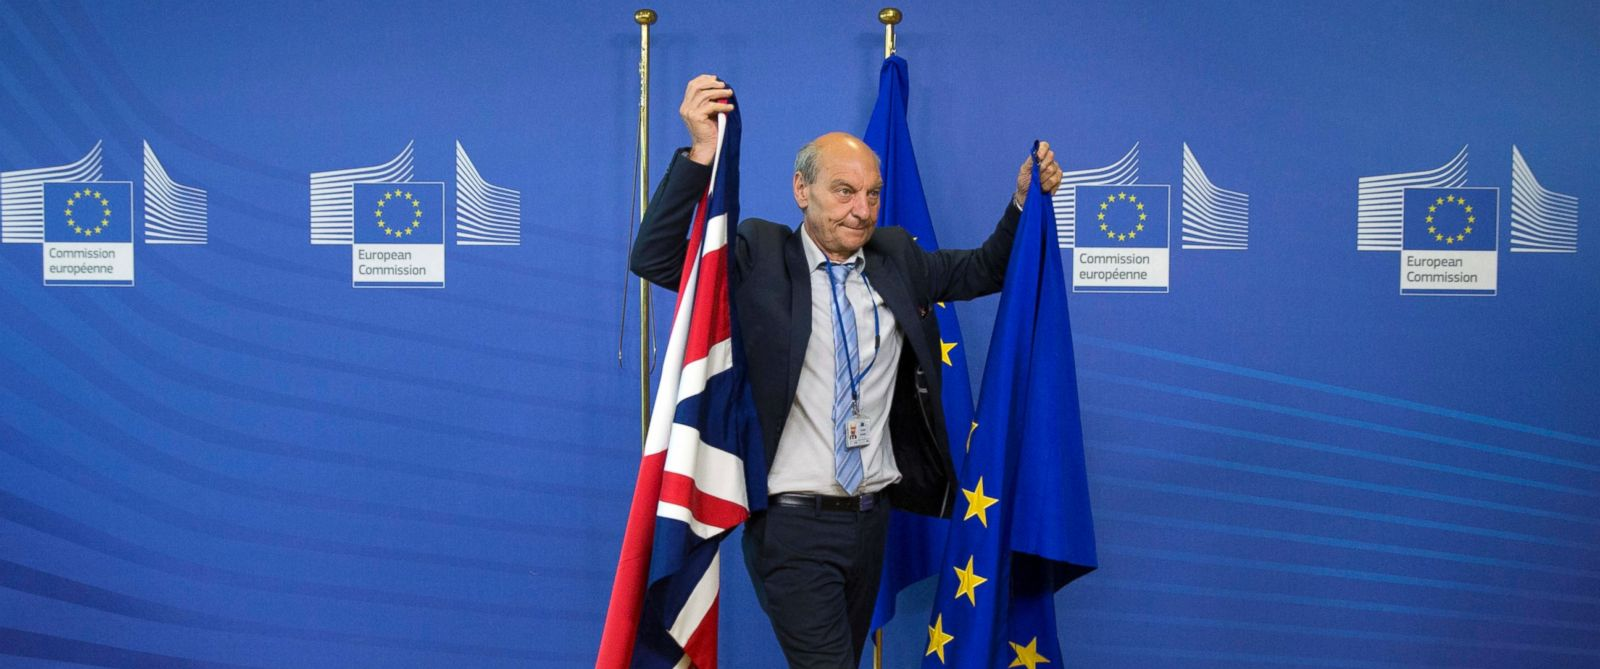 PHOTO: A member of protocol changes the EU and British flags prior to the arrival of EU Chief Brexit Negotiator Michel Barnier and British Secretary of State David Davis at EU headquarters in Brussels, June 19, 2017.